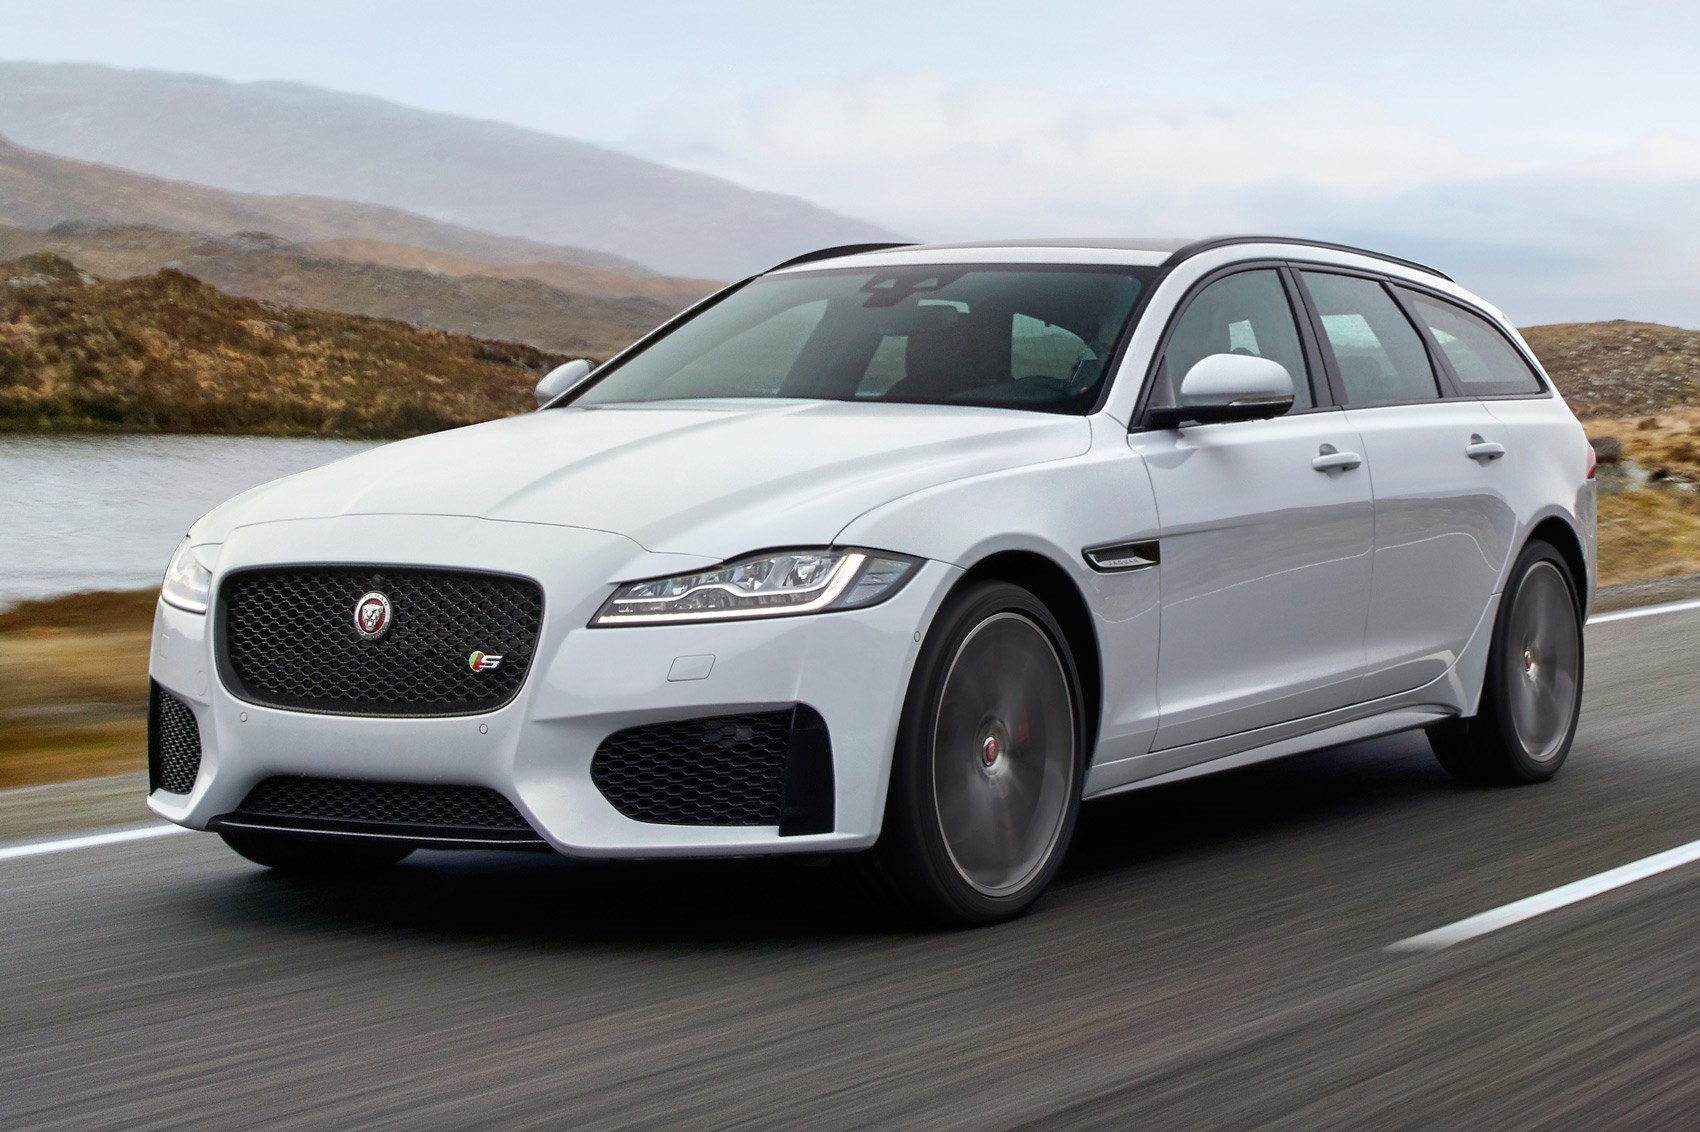 Jaguar Xf Cars For Sale